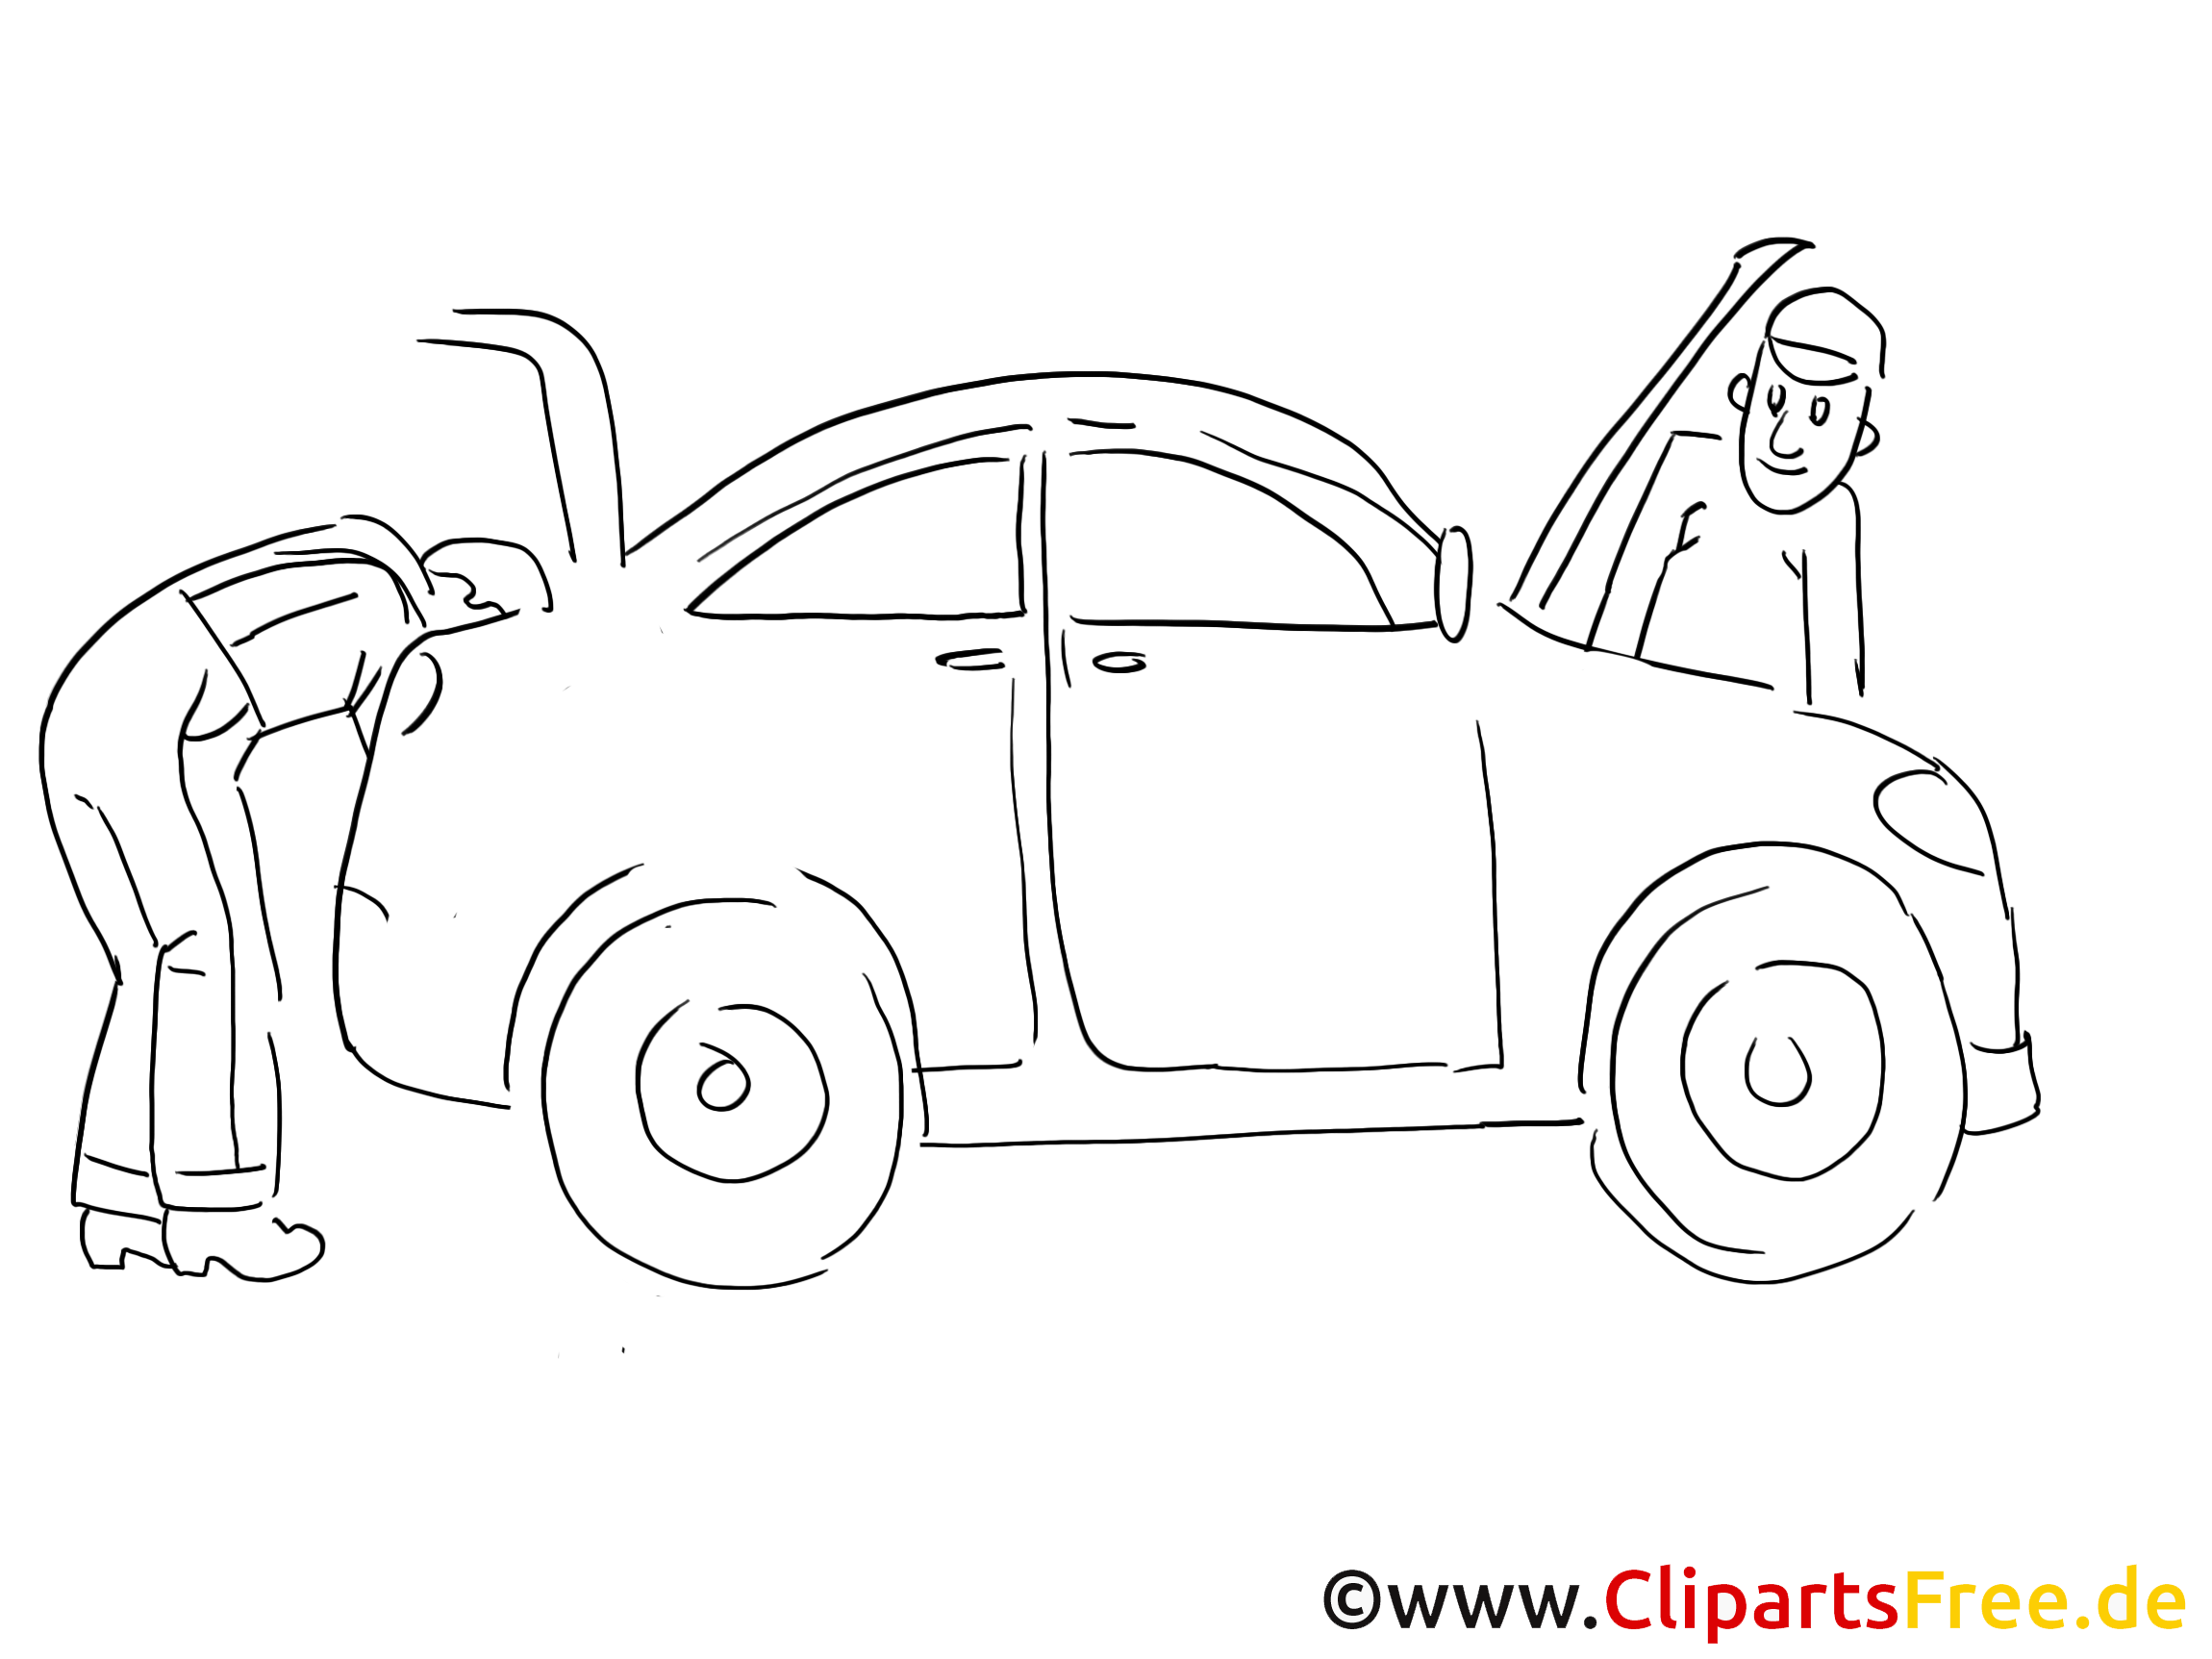 Repair body shop for vehicles clip art black and white, graphic, pic)